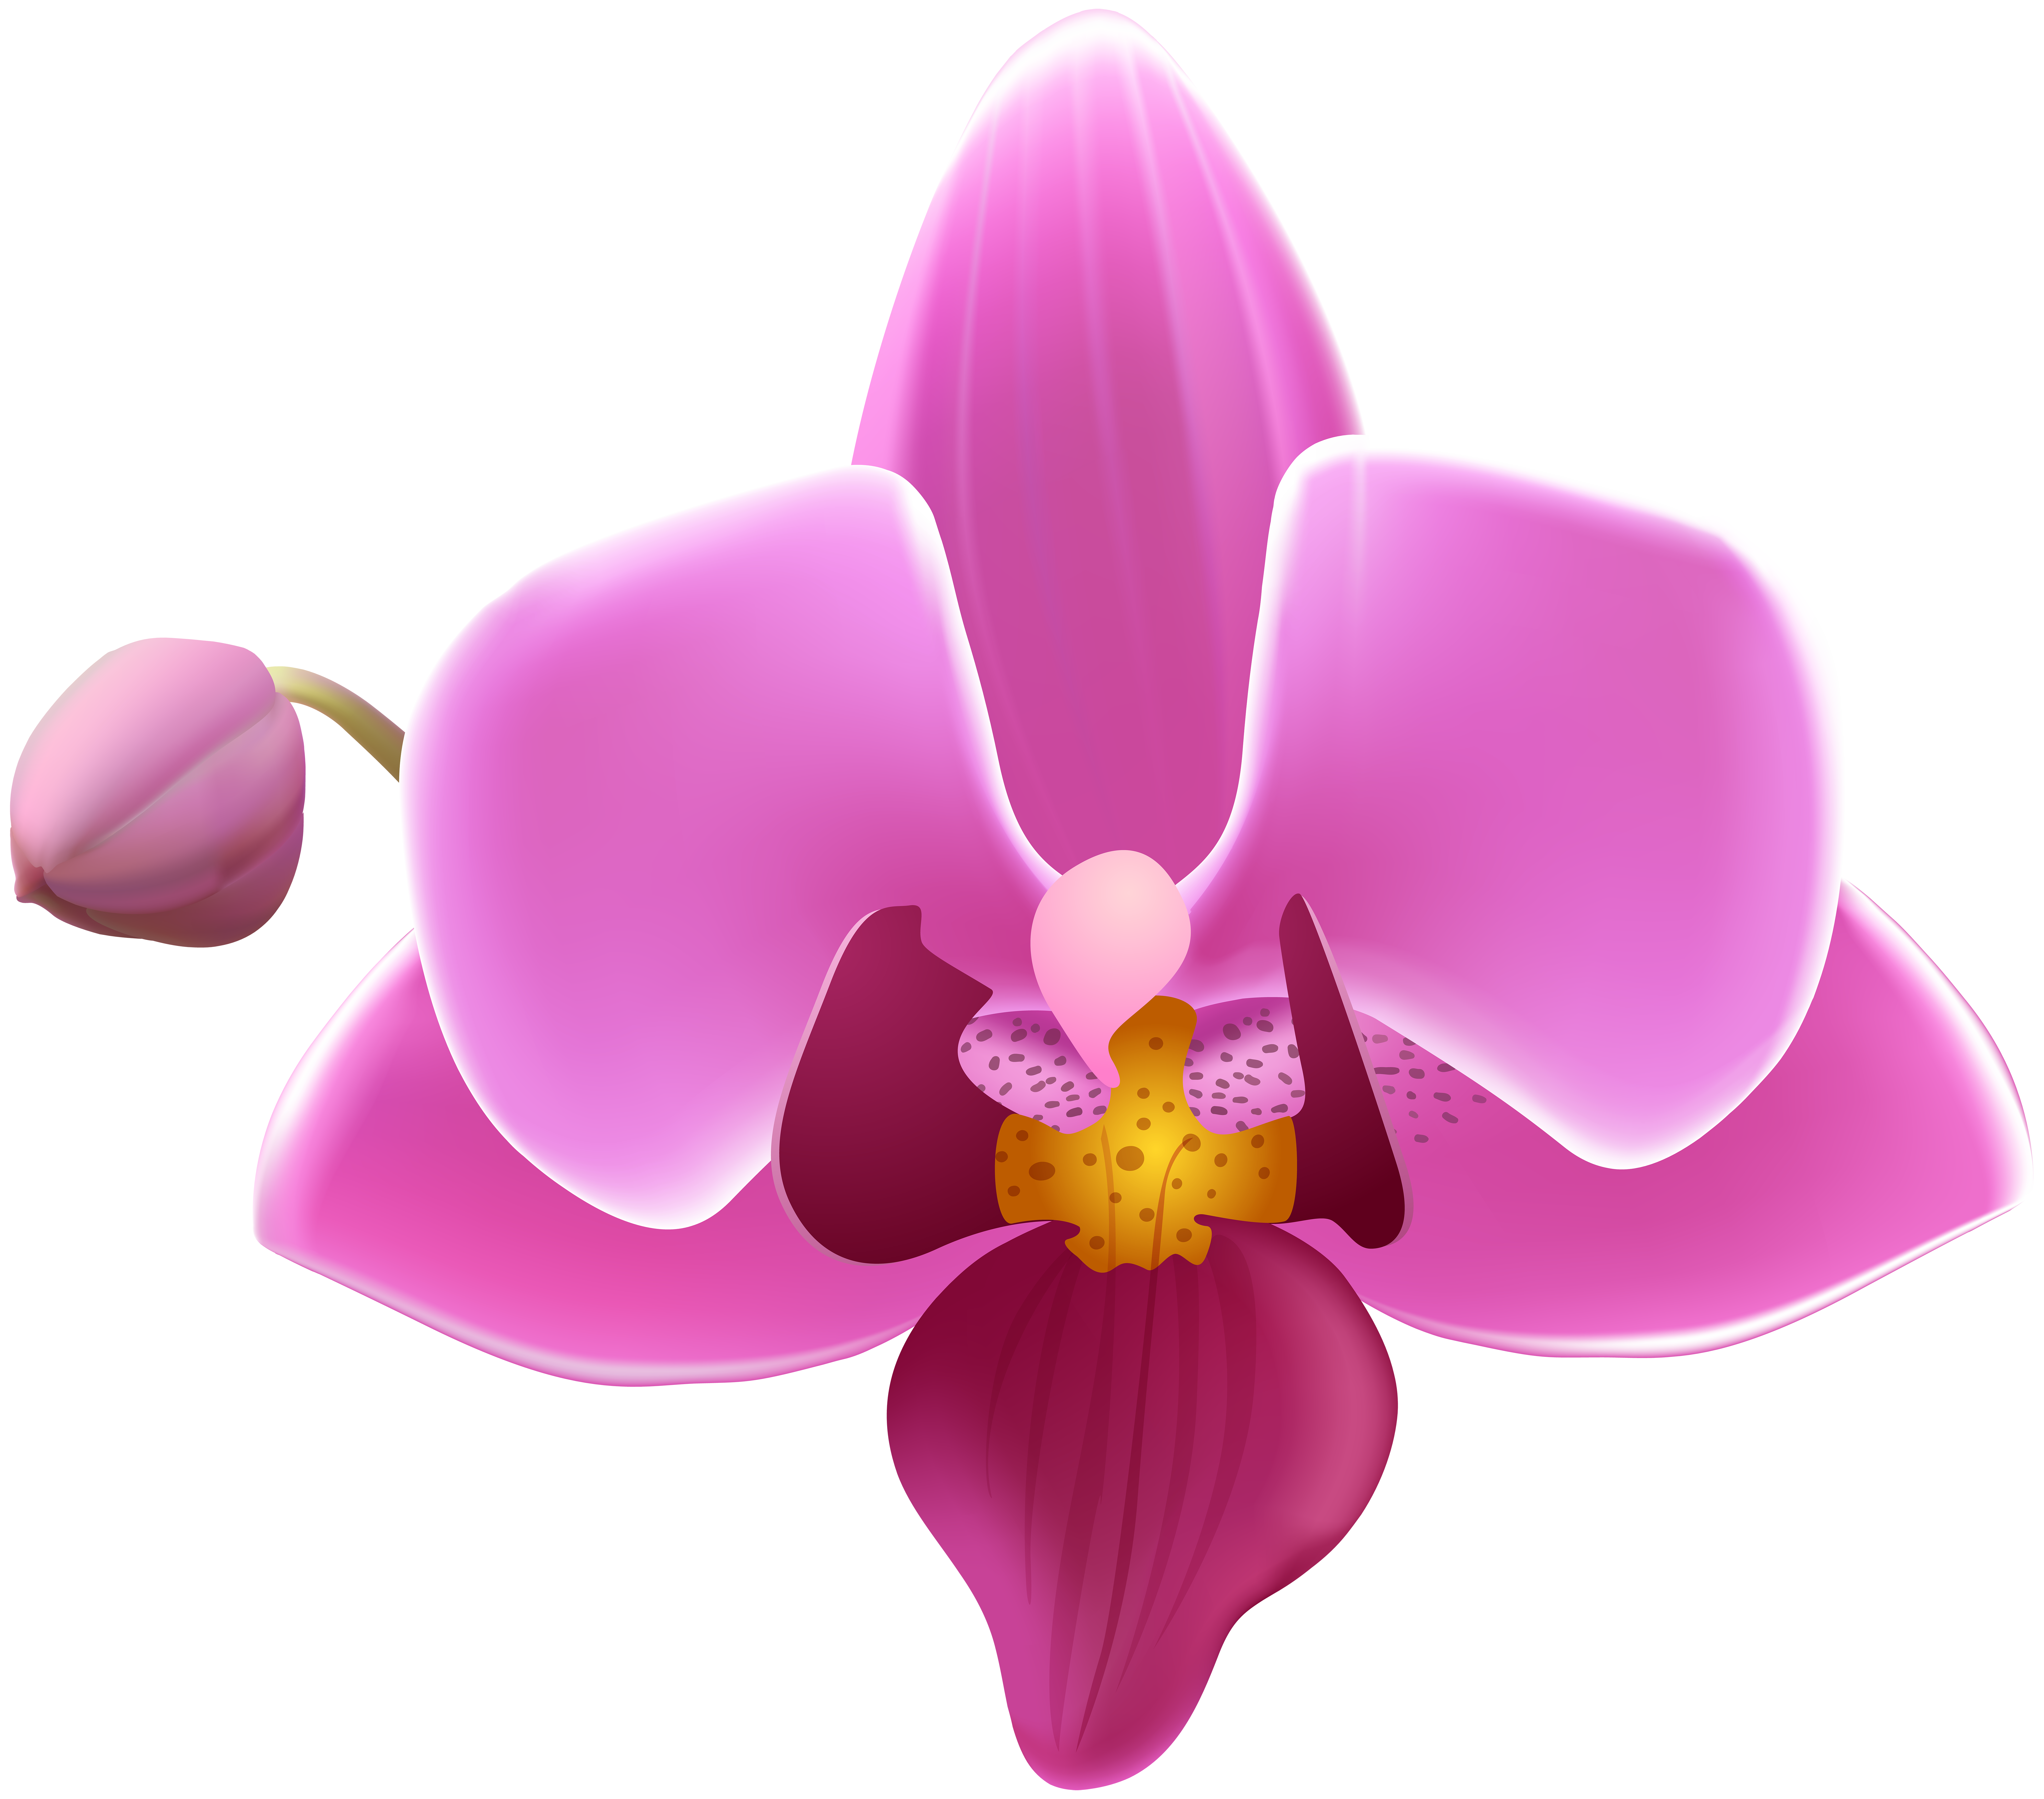 Orchid flower clipart image freeuse library Orchid Flower Transparent Image   Gallery Yopriceville - High ... image freeuse library